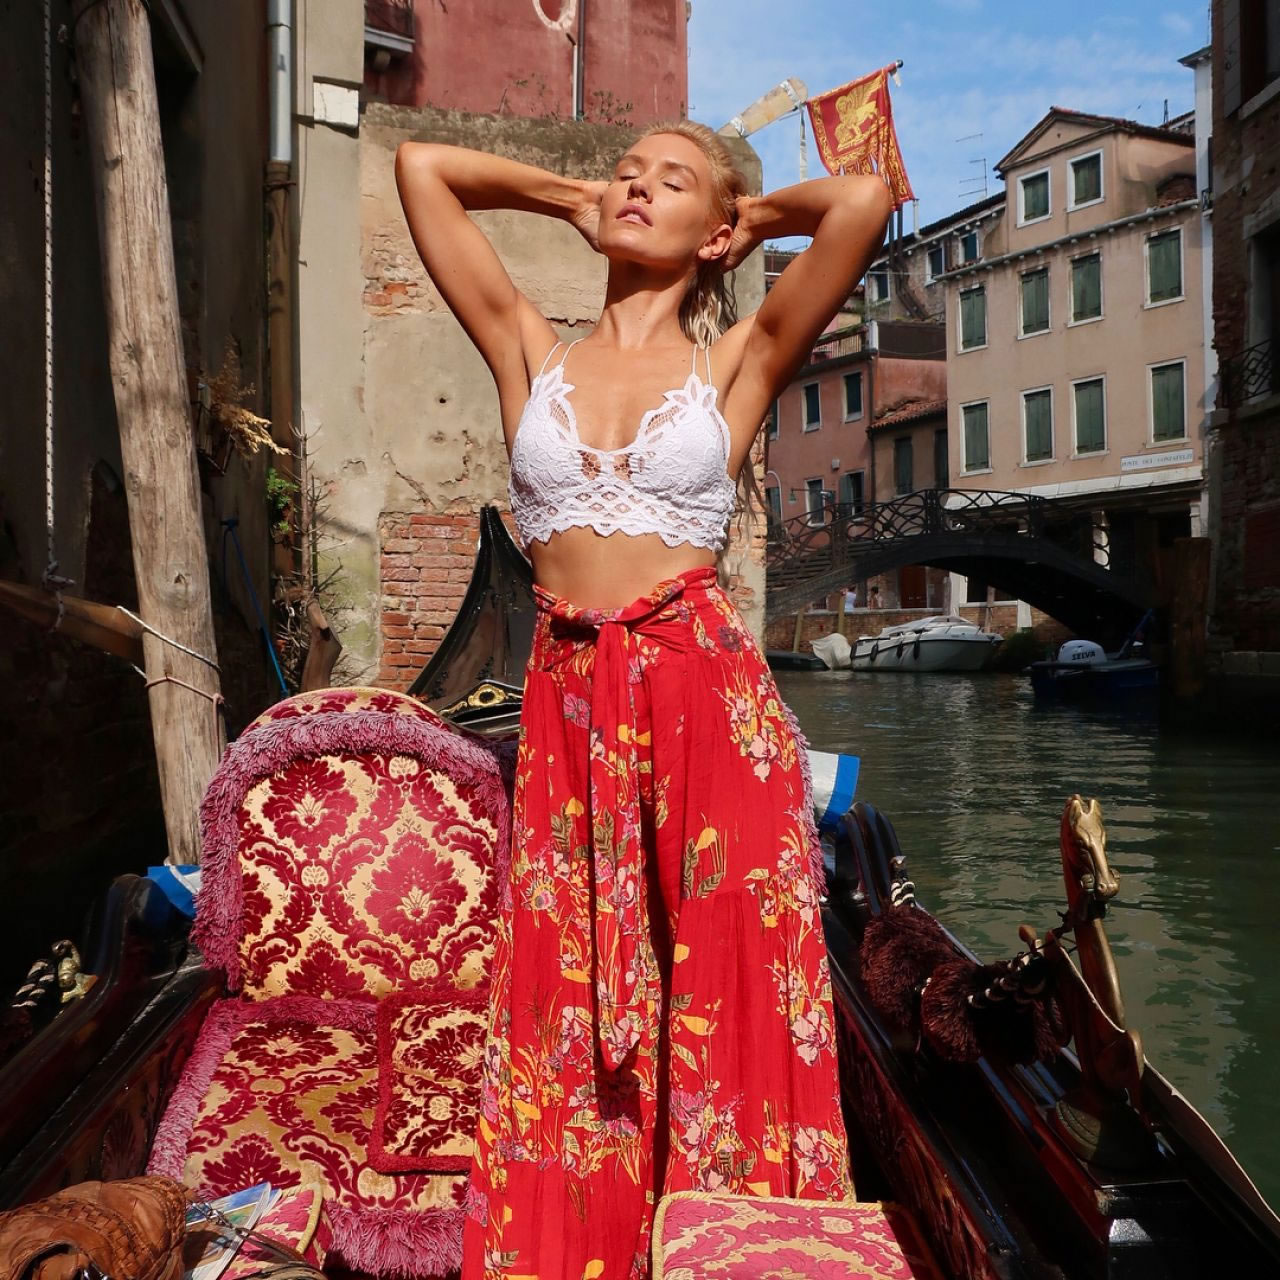 Nicky Whelan stretches in a canal.jpg